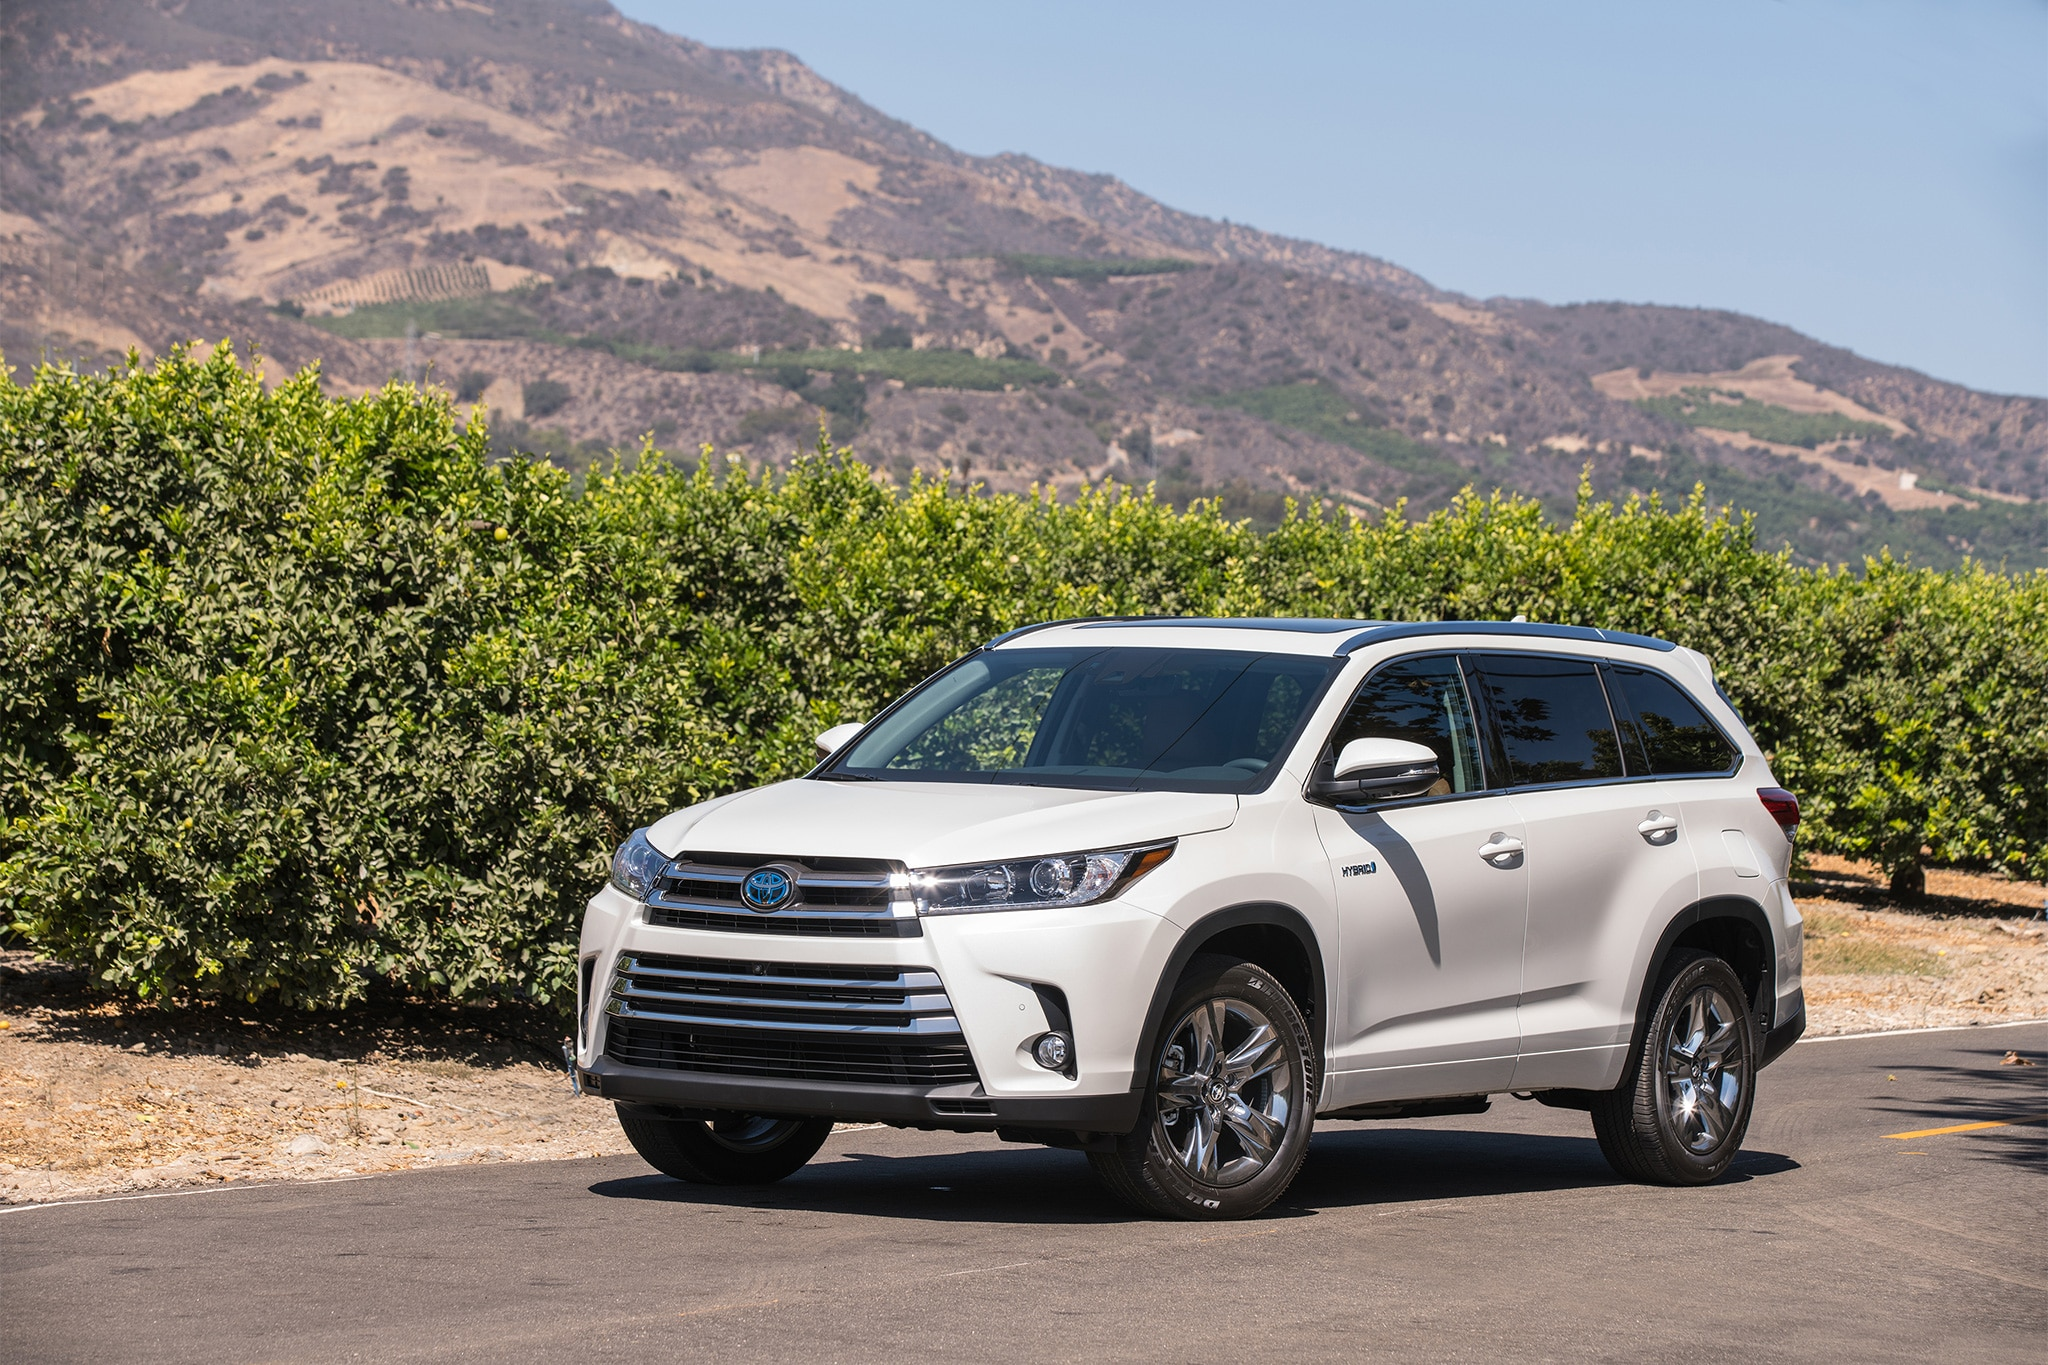 2017 toyota highlander receives updates for the high road automobile magazine. Black Bedroom Furniture Sets. Home Design Ideas